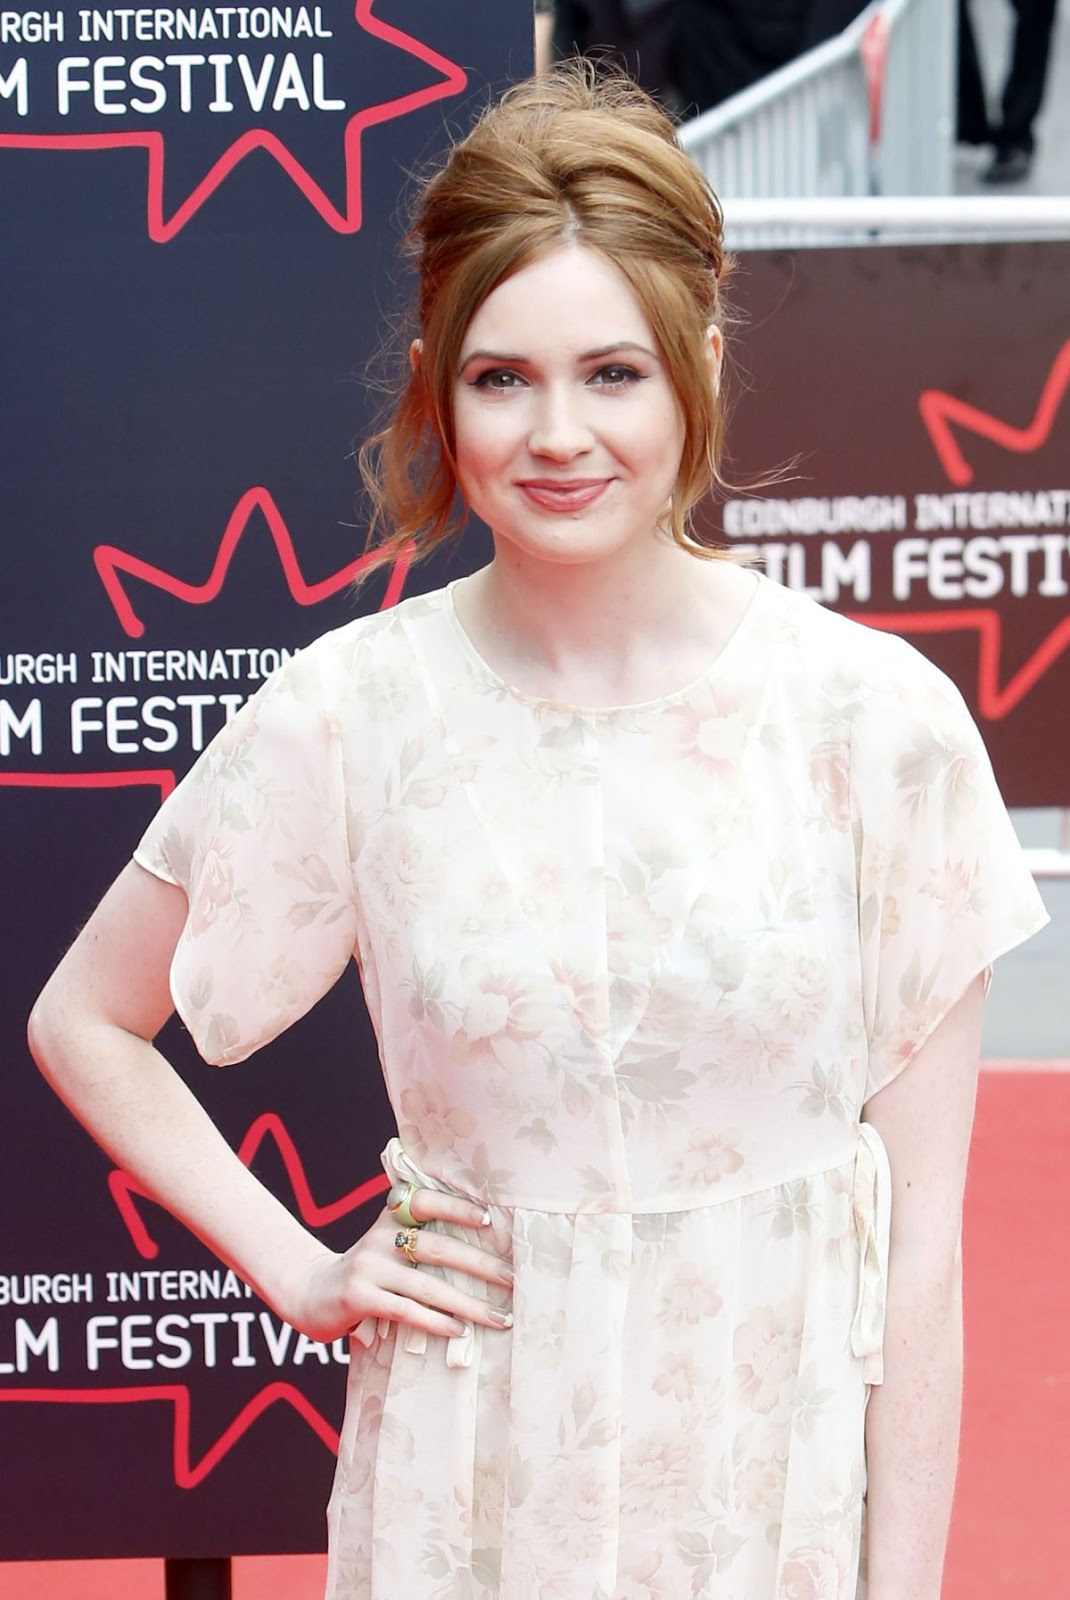 HD Photos of Jumanji actress Karen Gillan Attends Edinburgh Film Festival